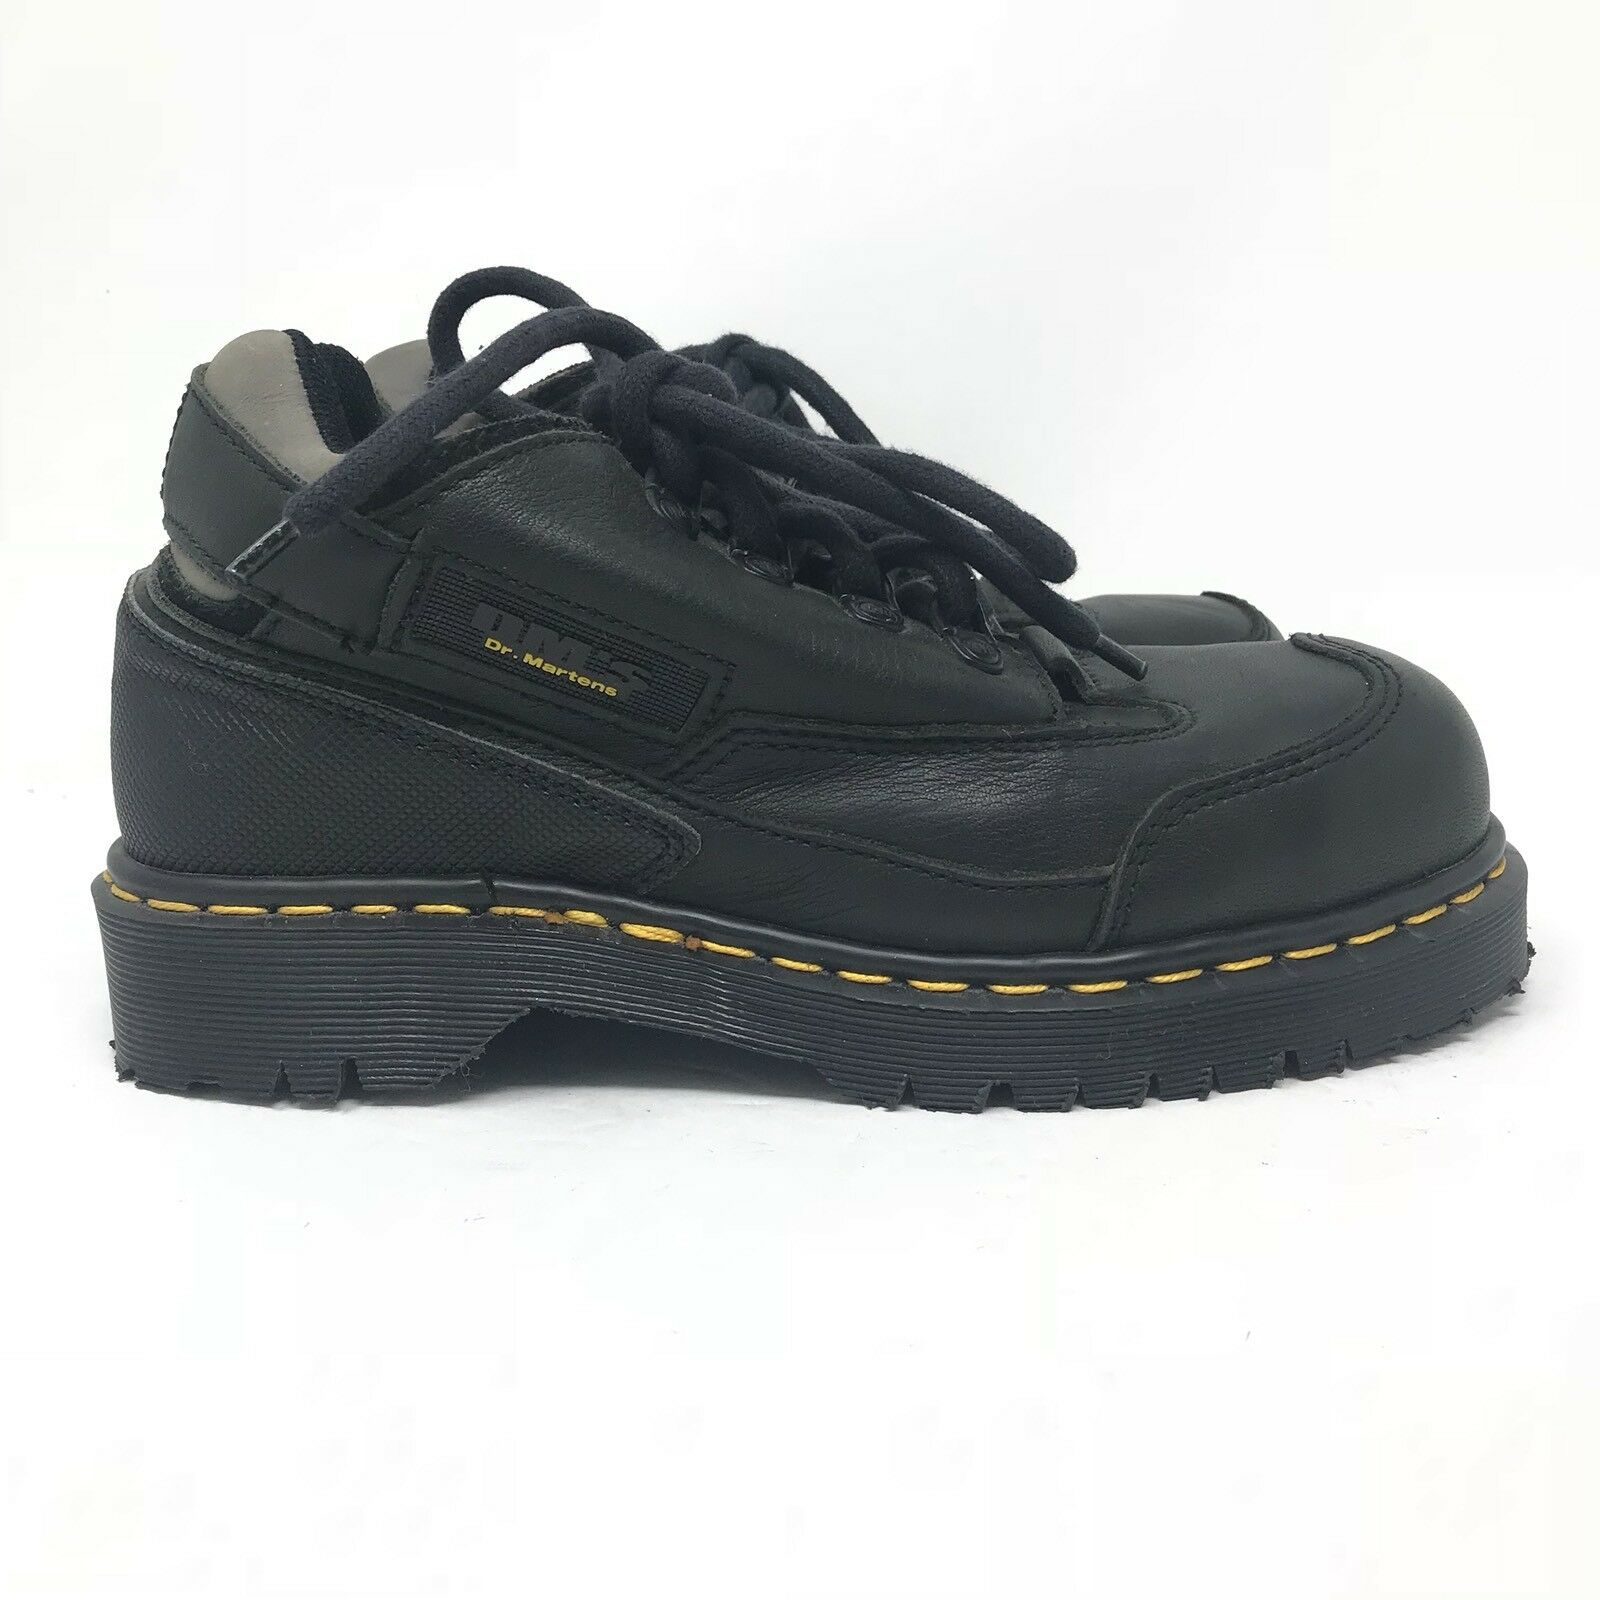 Dr. Martens Steel Toe Safety shoes Boot Slip Resistant Size 6 Made in England New